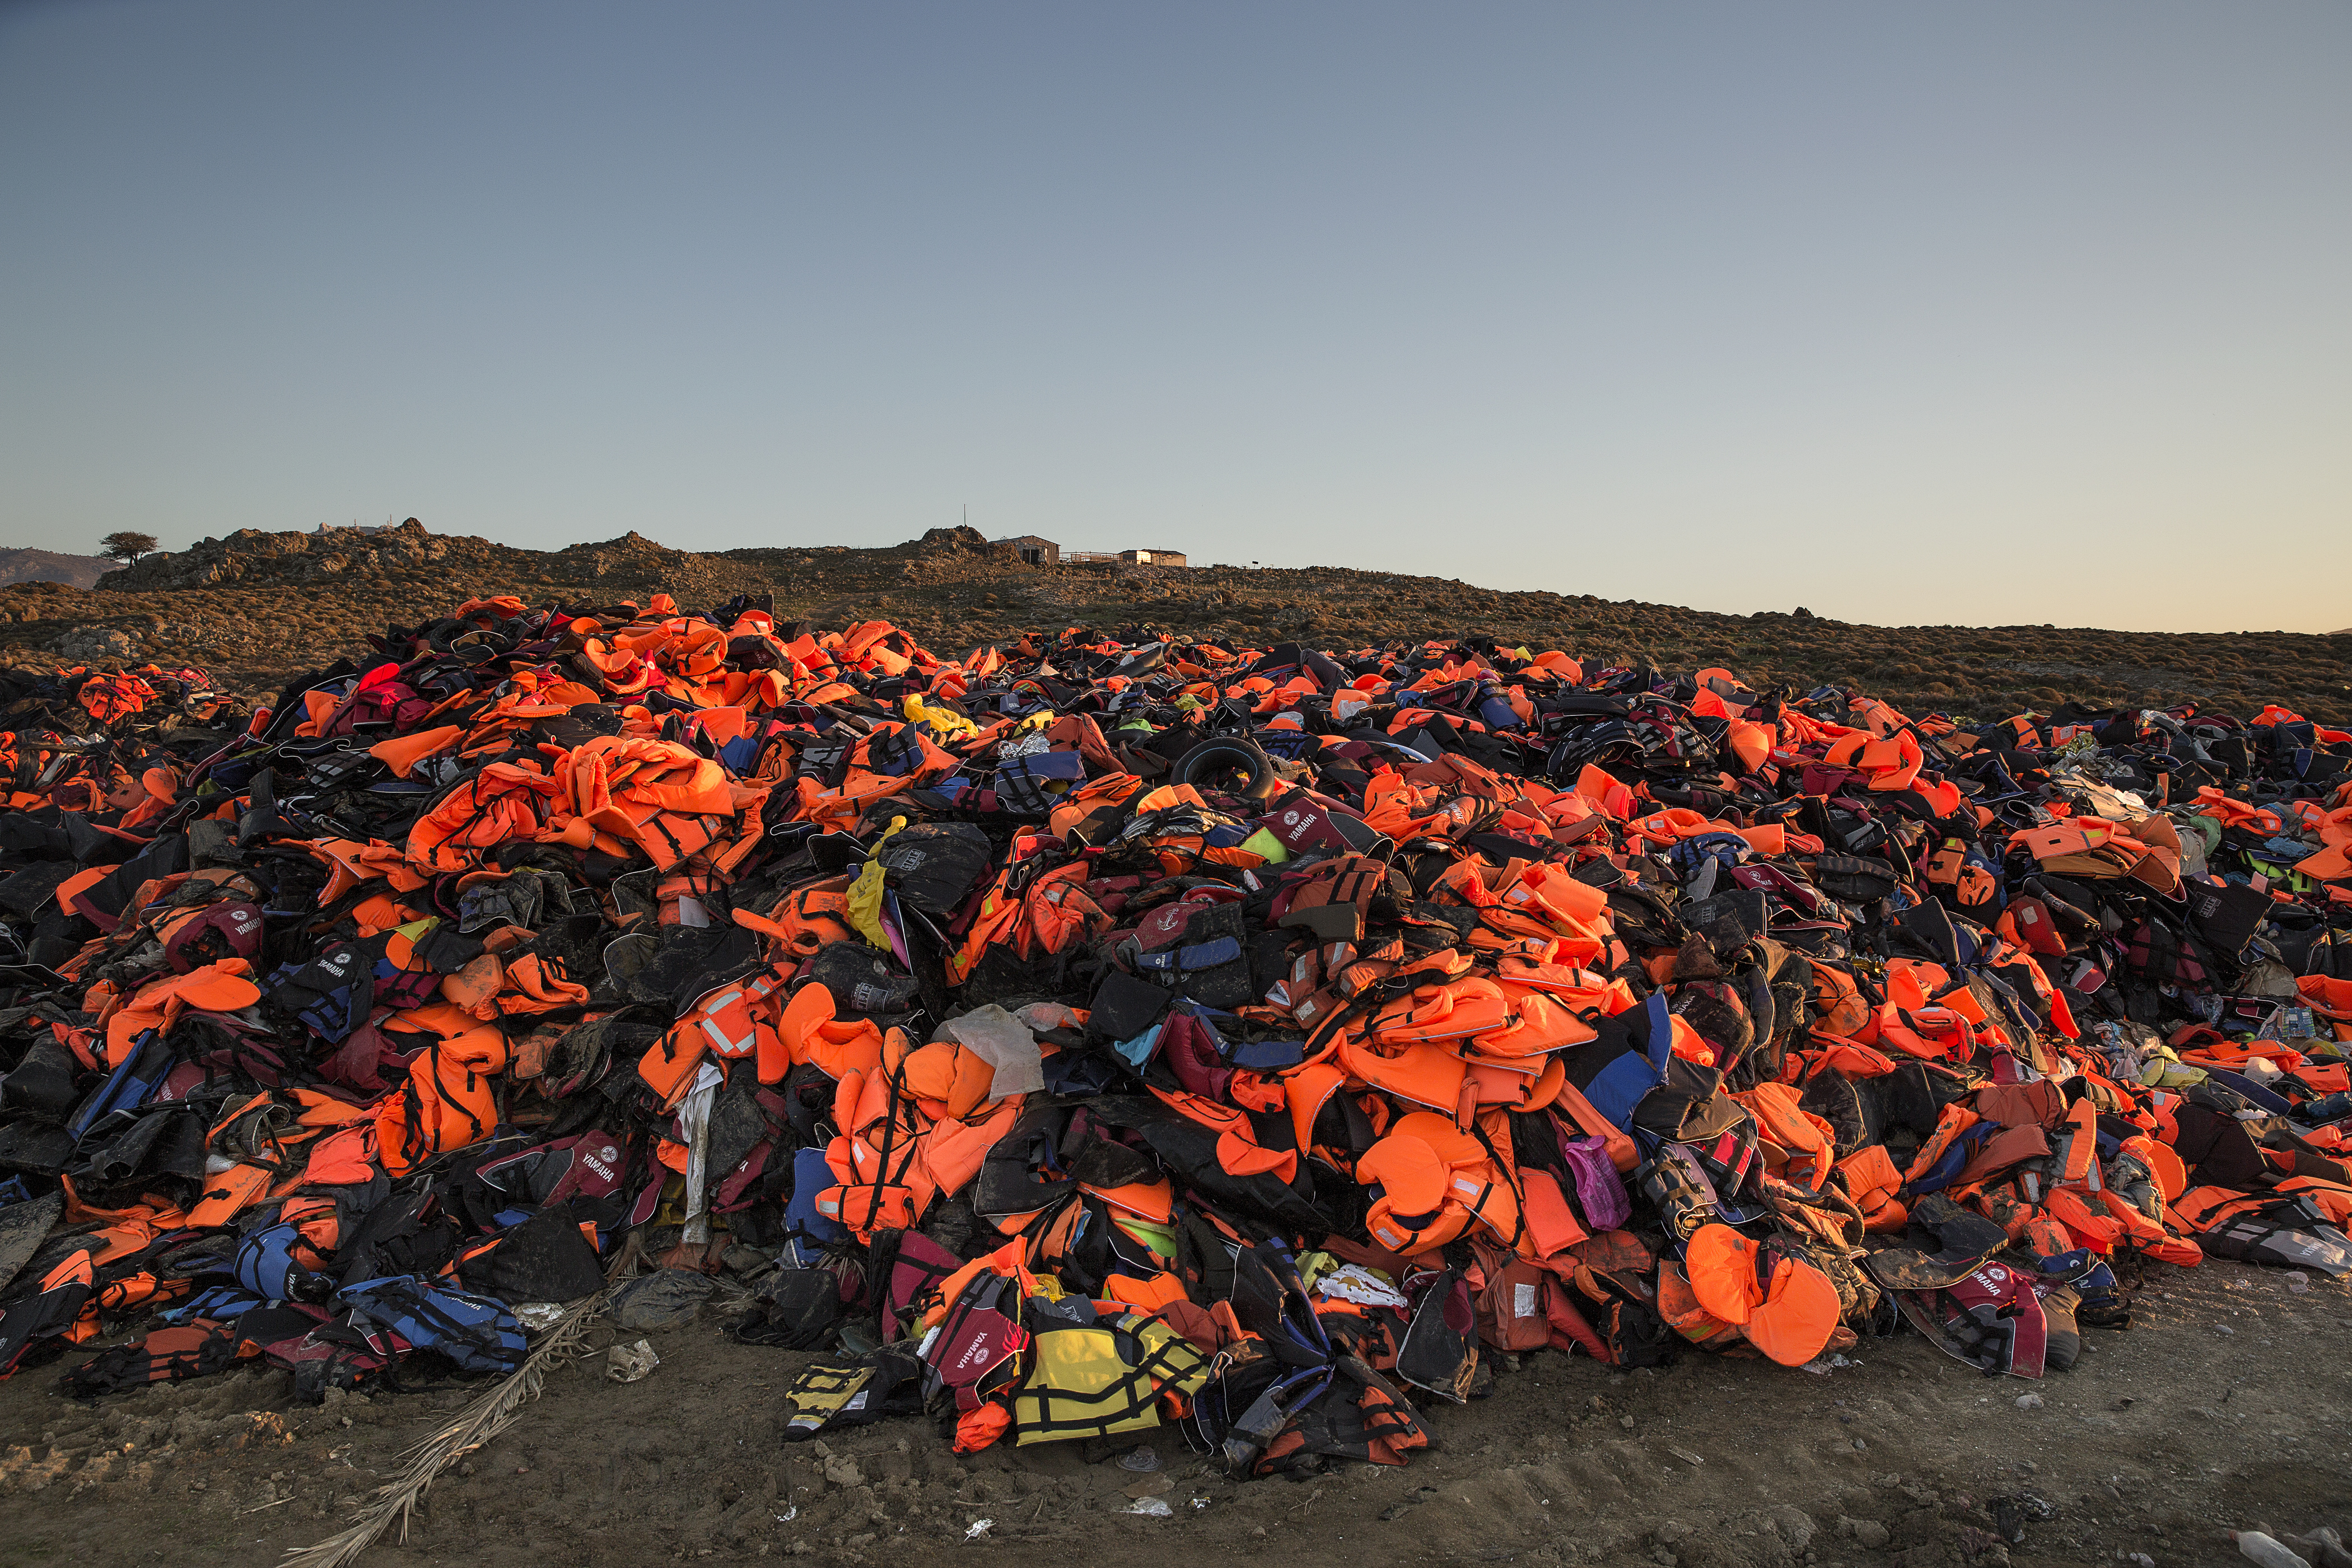 Lifejackets are seen  taking over a garbage dump in Molyvos, Lesbos on Nov. 12, 2015